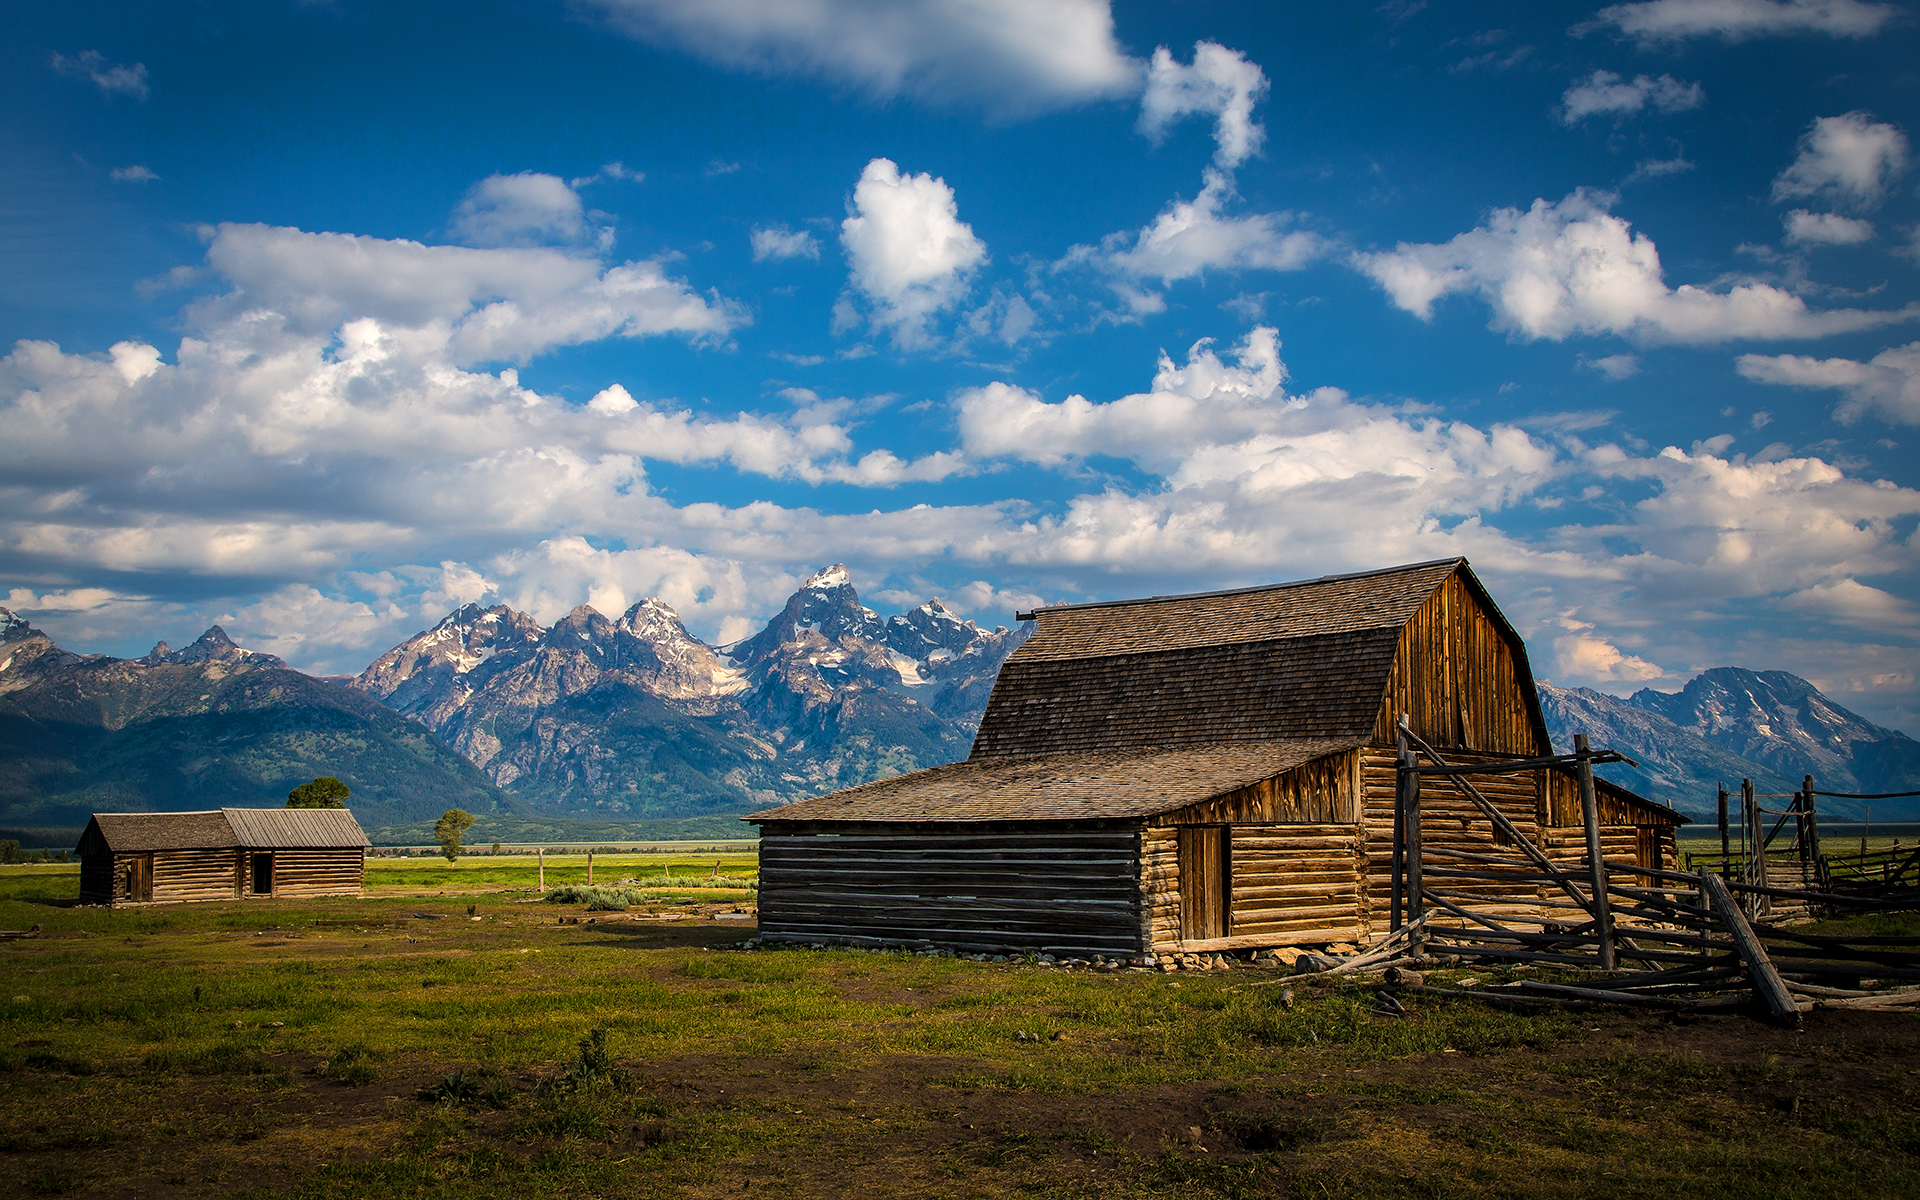 Abandoned Places In The World Daily Wallpaper Grand Tetons Wyoming Usa I Like To